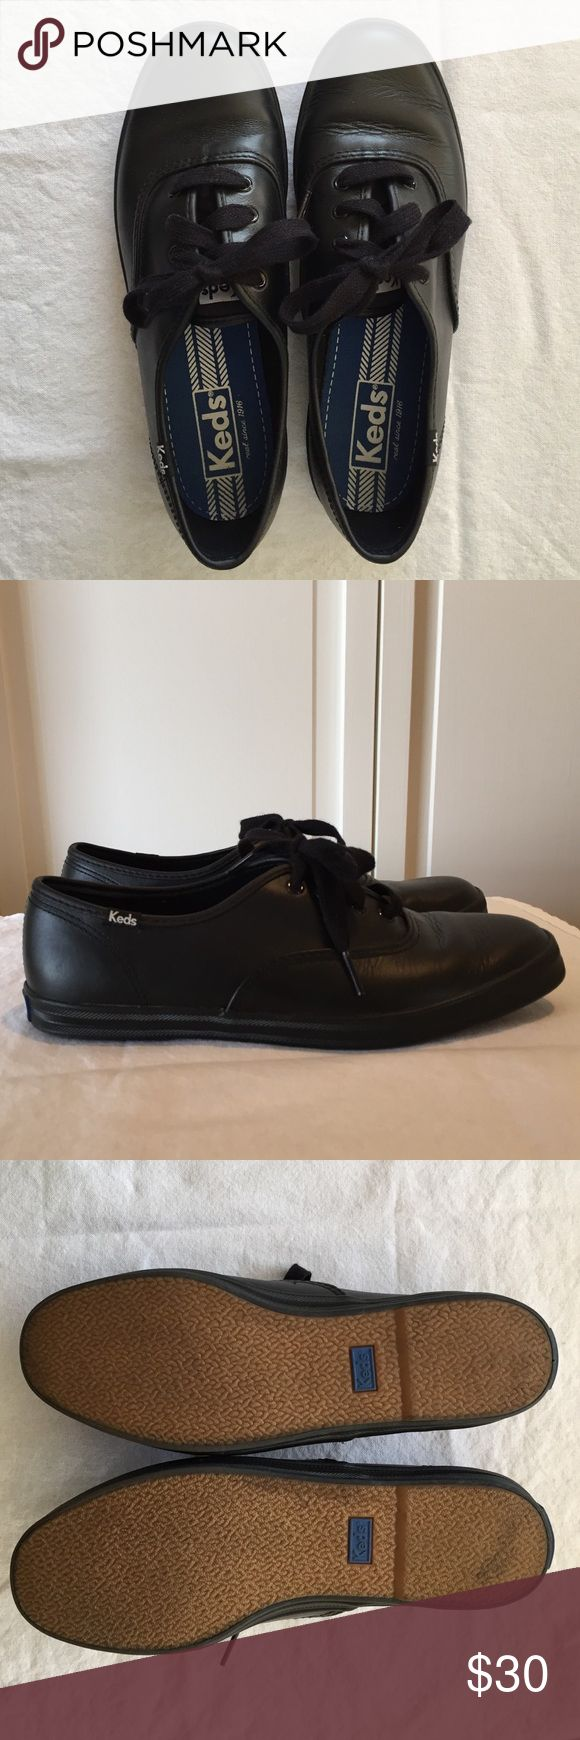 Keds Champion-Leather. Black. Size 7.5. Worn once Black leather sneaker. Rubber calendar outsole for excellent traction. Soft fabric lining, comfortable arch support, a wedge that hugs your heel and more wiggle room for your toes. Weight: 8 oz Keds Shoes Sneakers